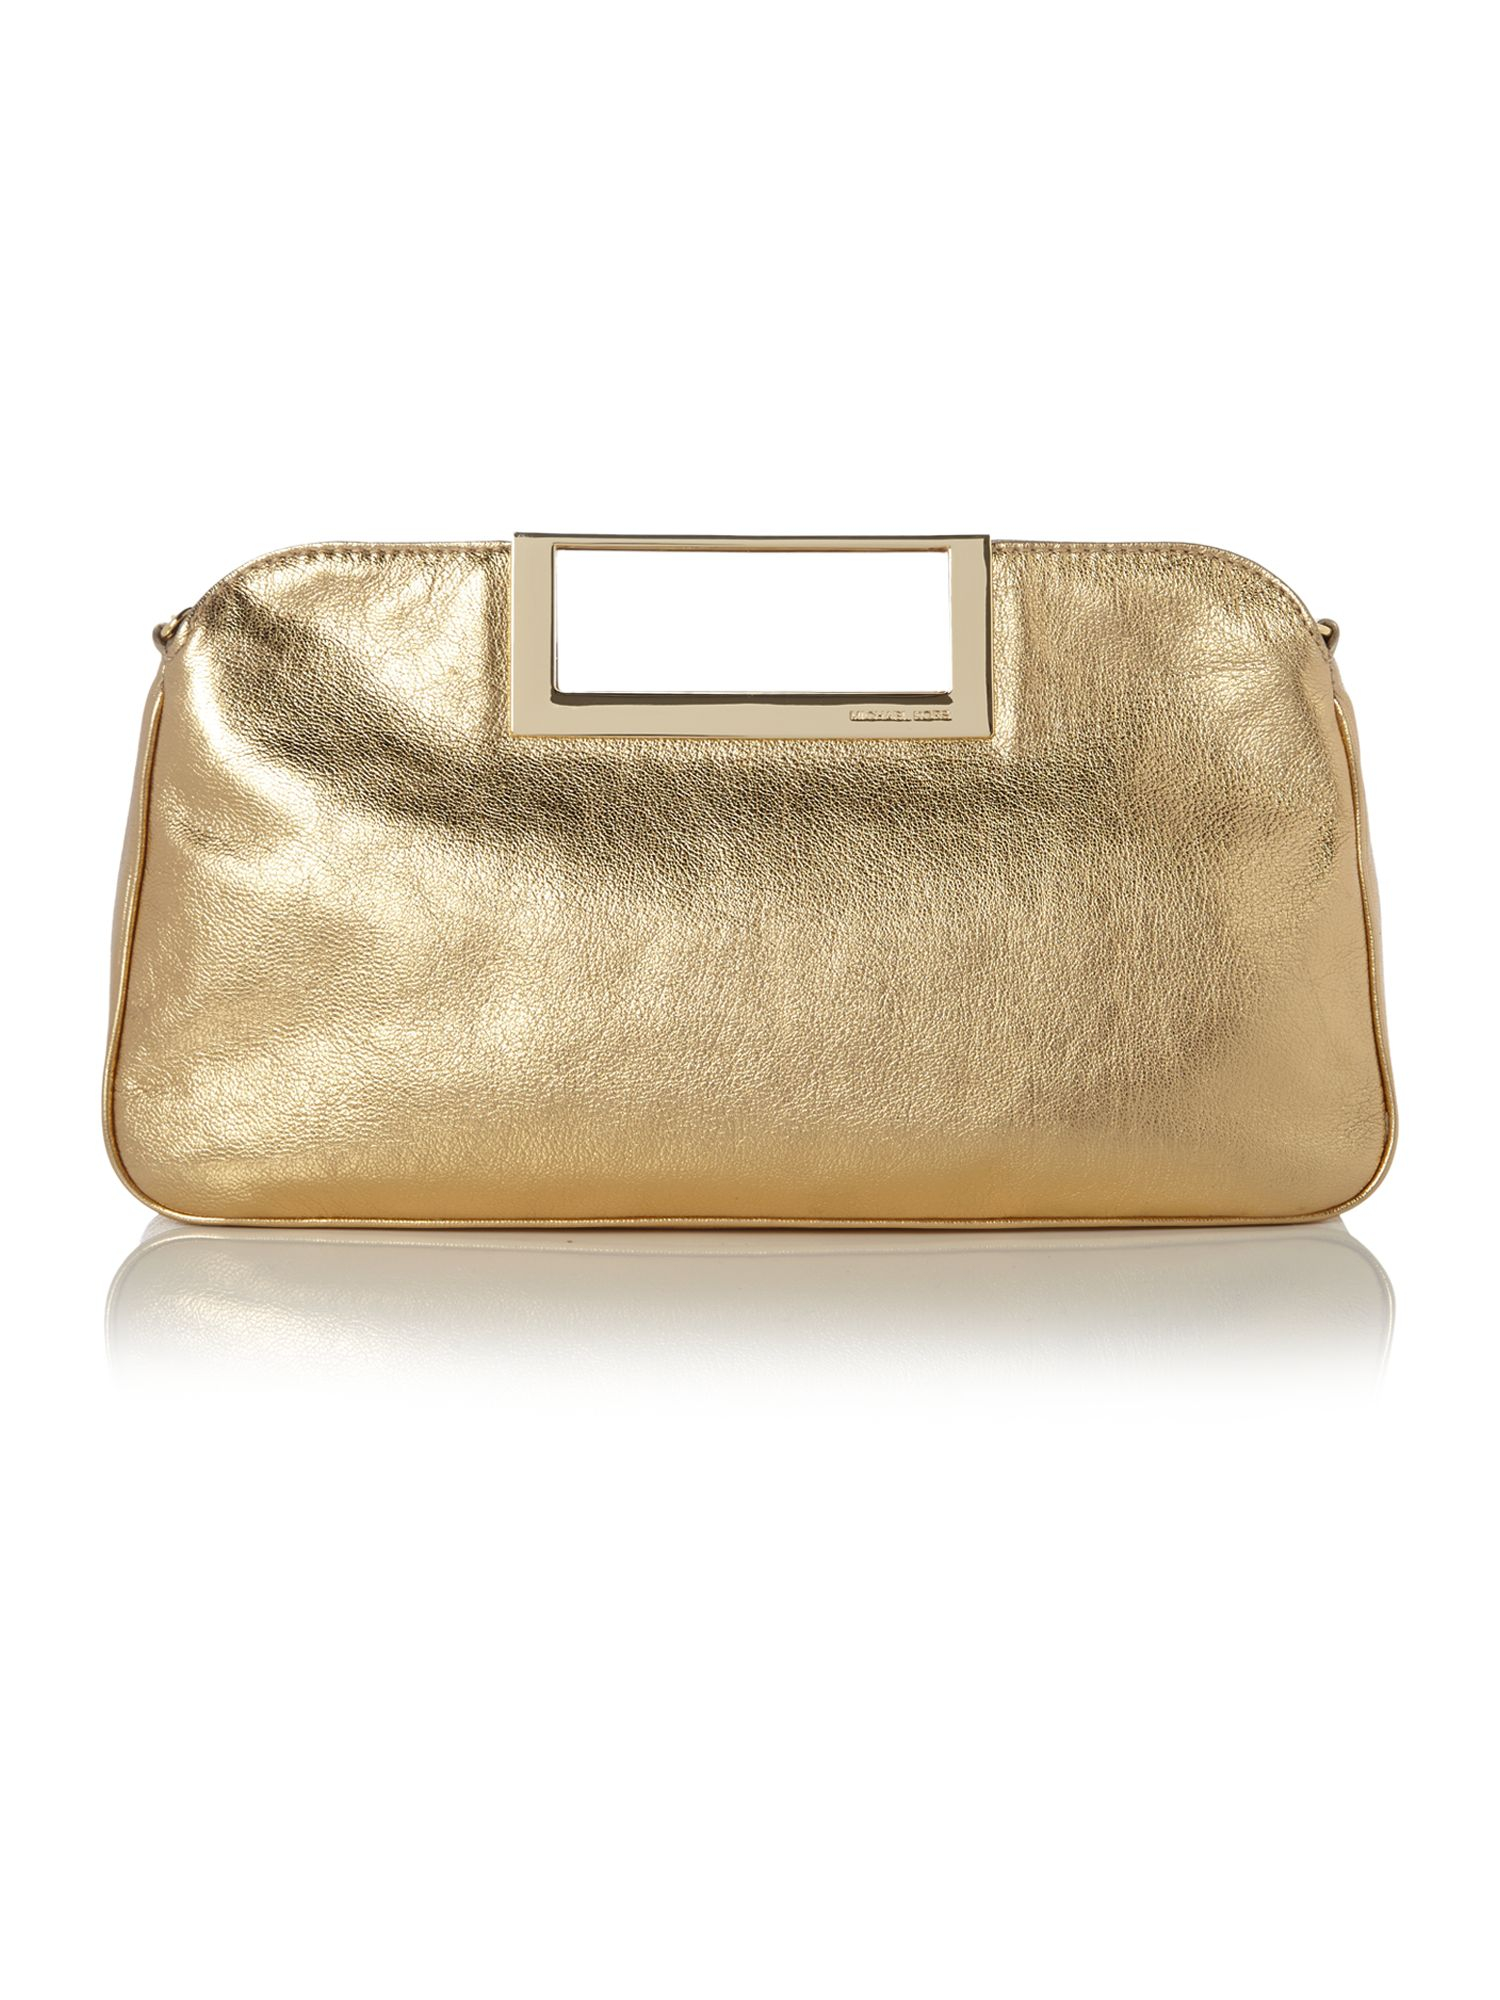 michael kors berkley gold patent clutch bag in gold lyst. Black Bedroom Furniture Sets. Home Design Ideas